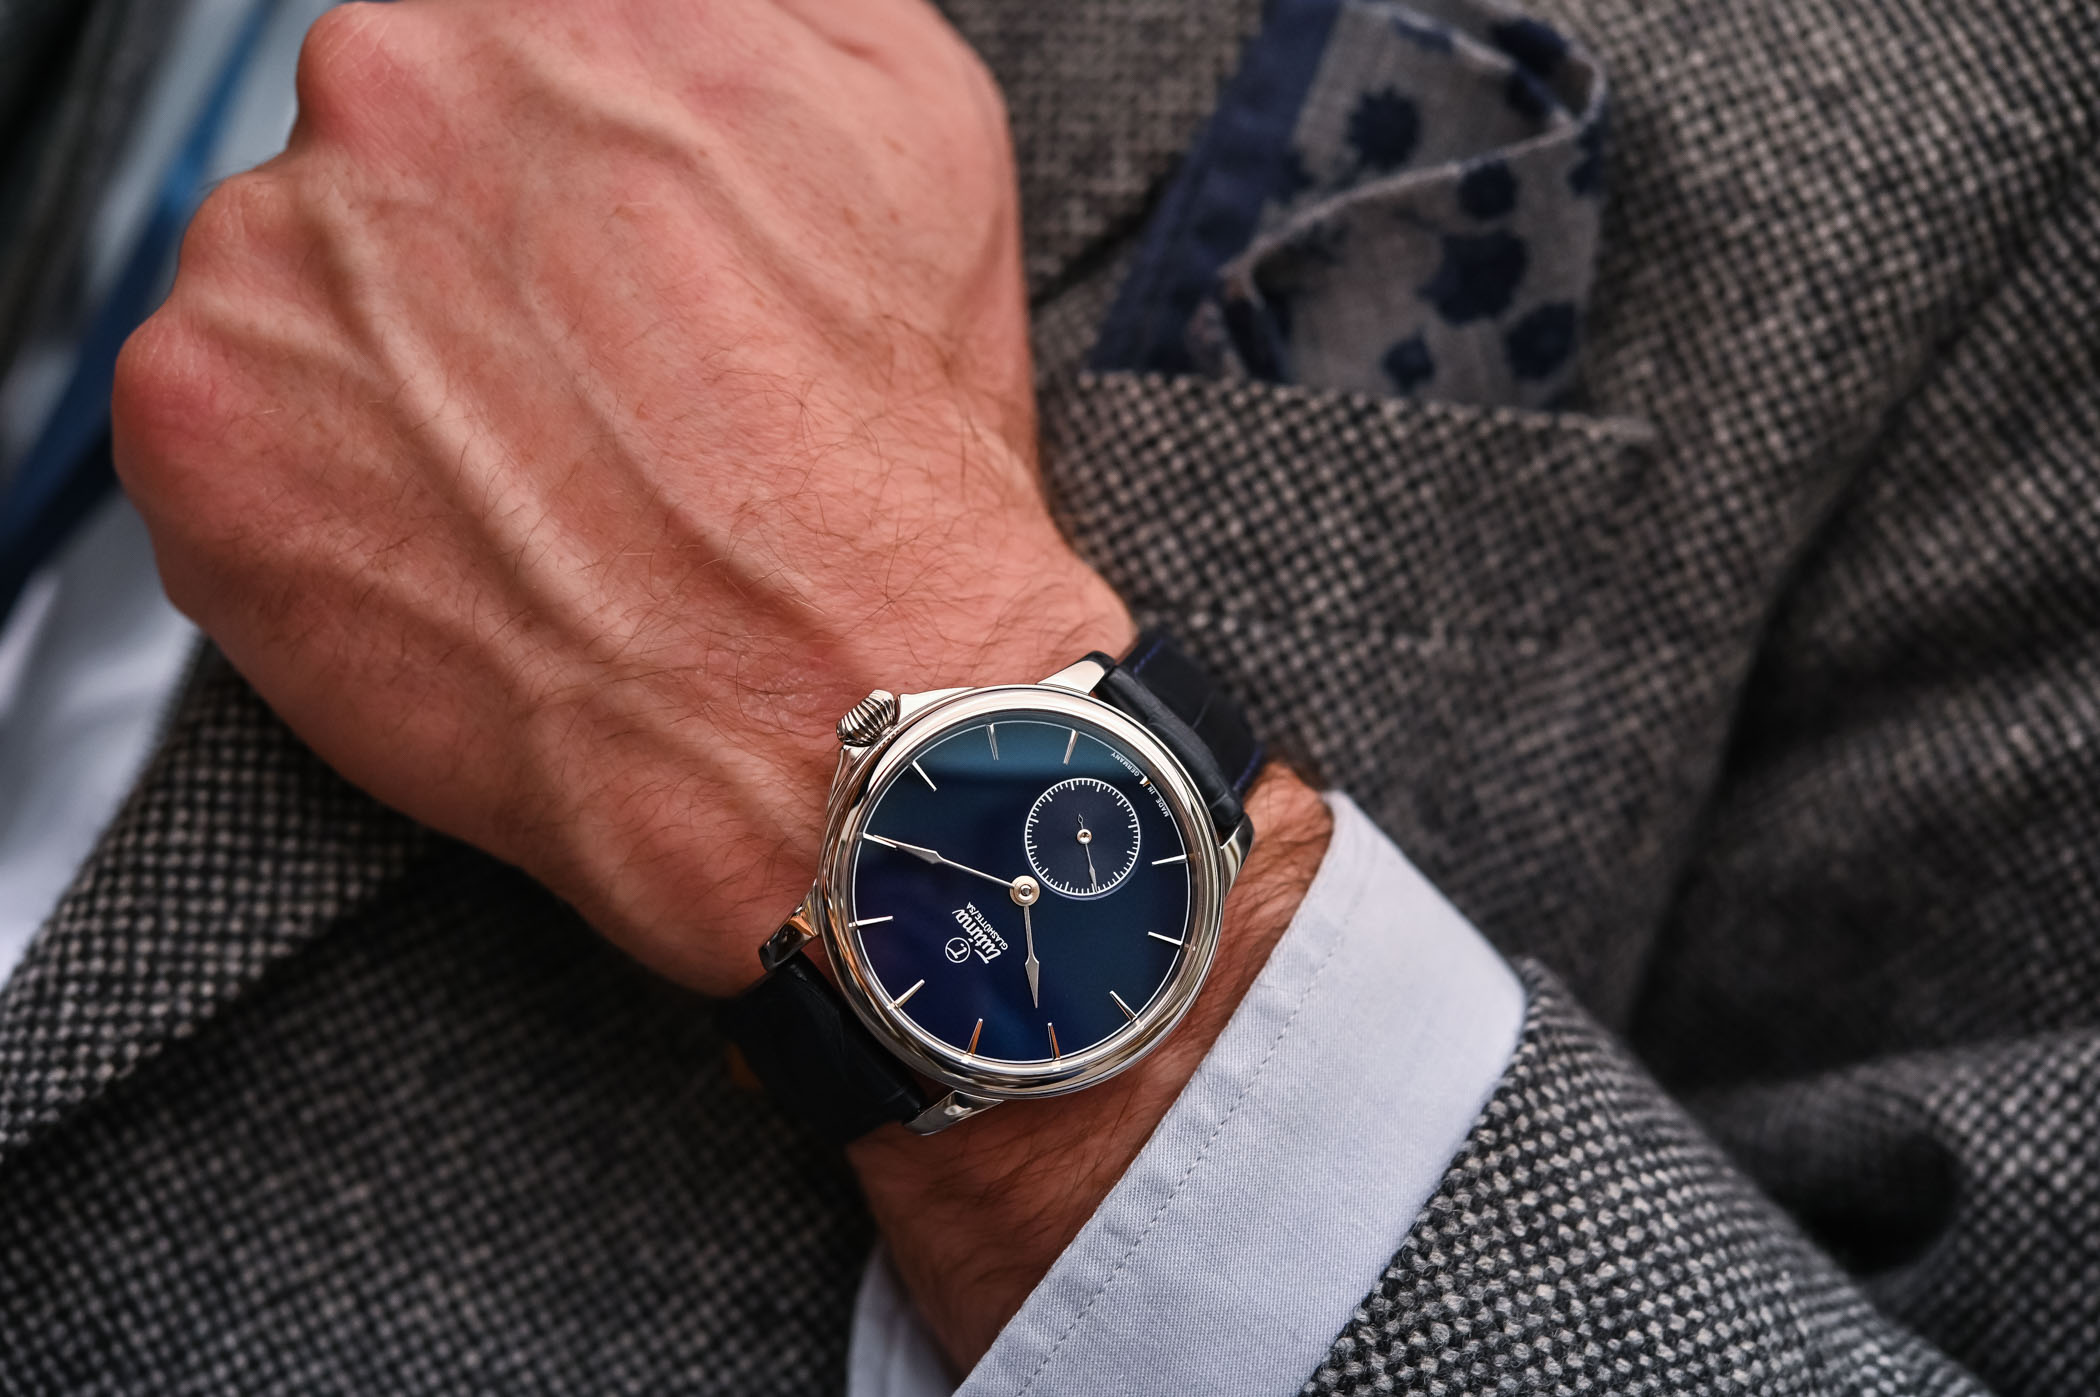 Tutima-Patria-Steel-Blue-Enamel-Dial-Baselworld-2019-Hands-On-31